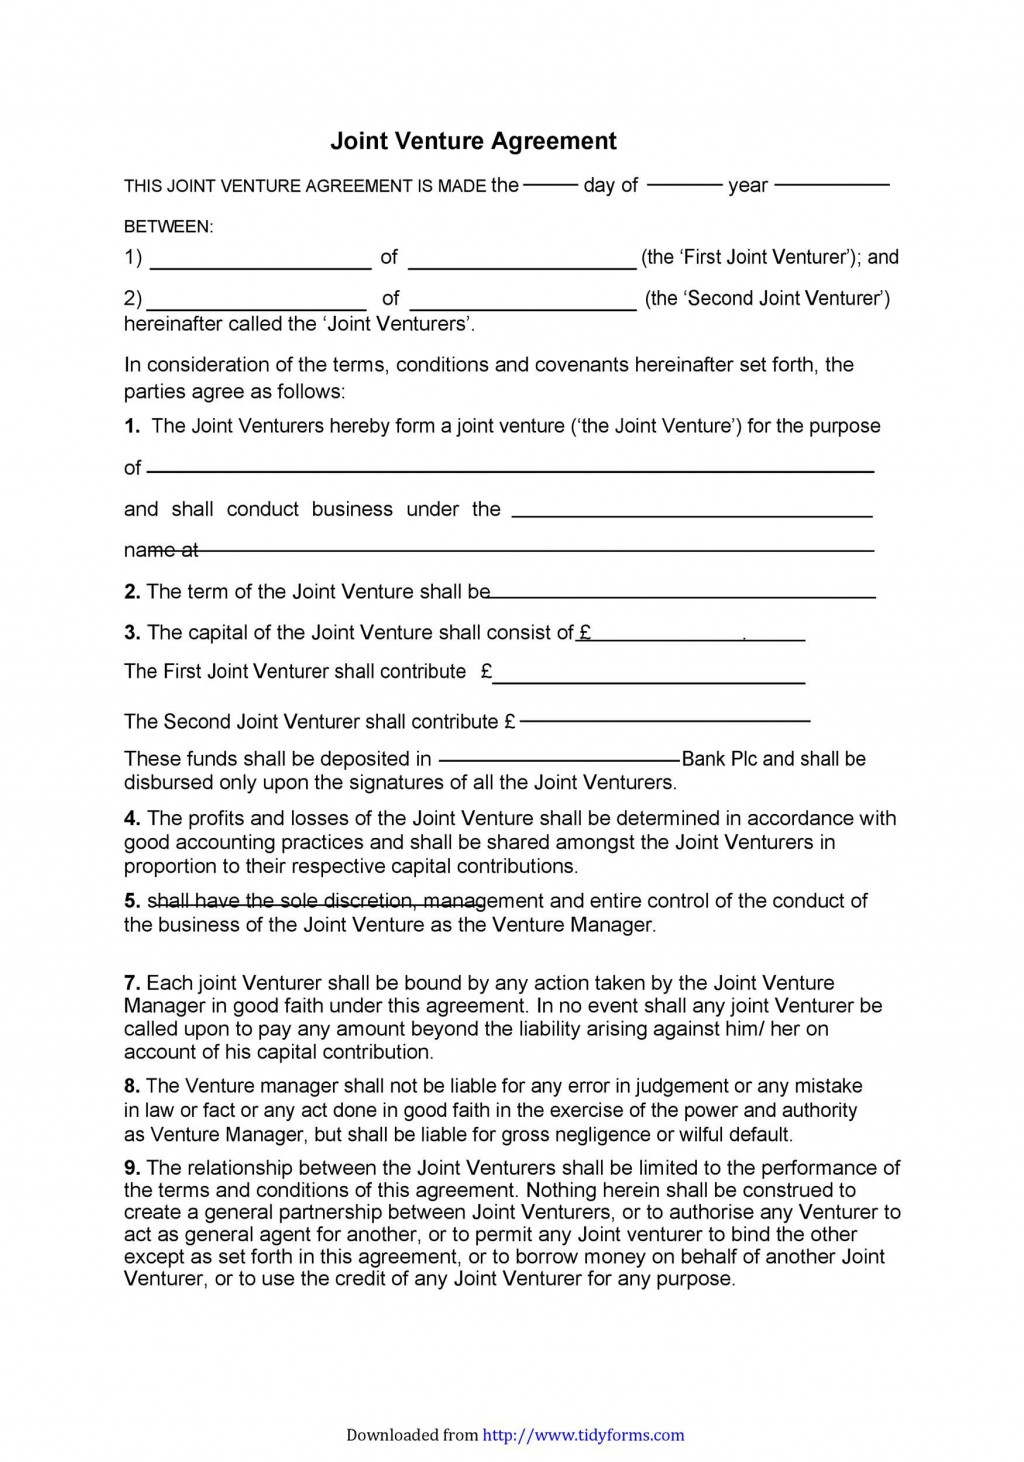 008 Unique Joint Venture Agreement Template Inspiration  South African Doc Uk Property DevelopmentLarge